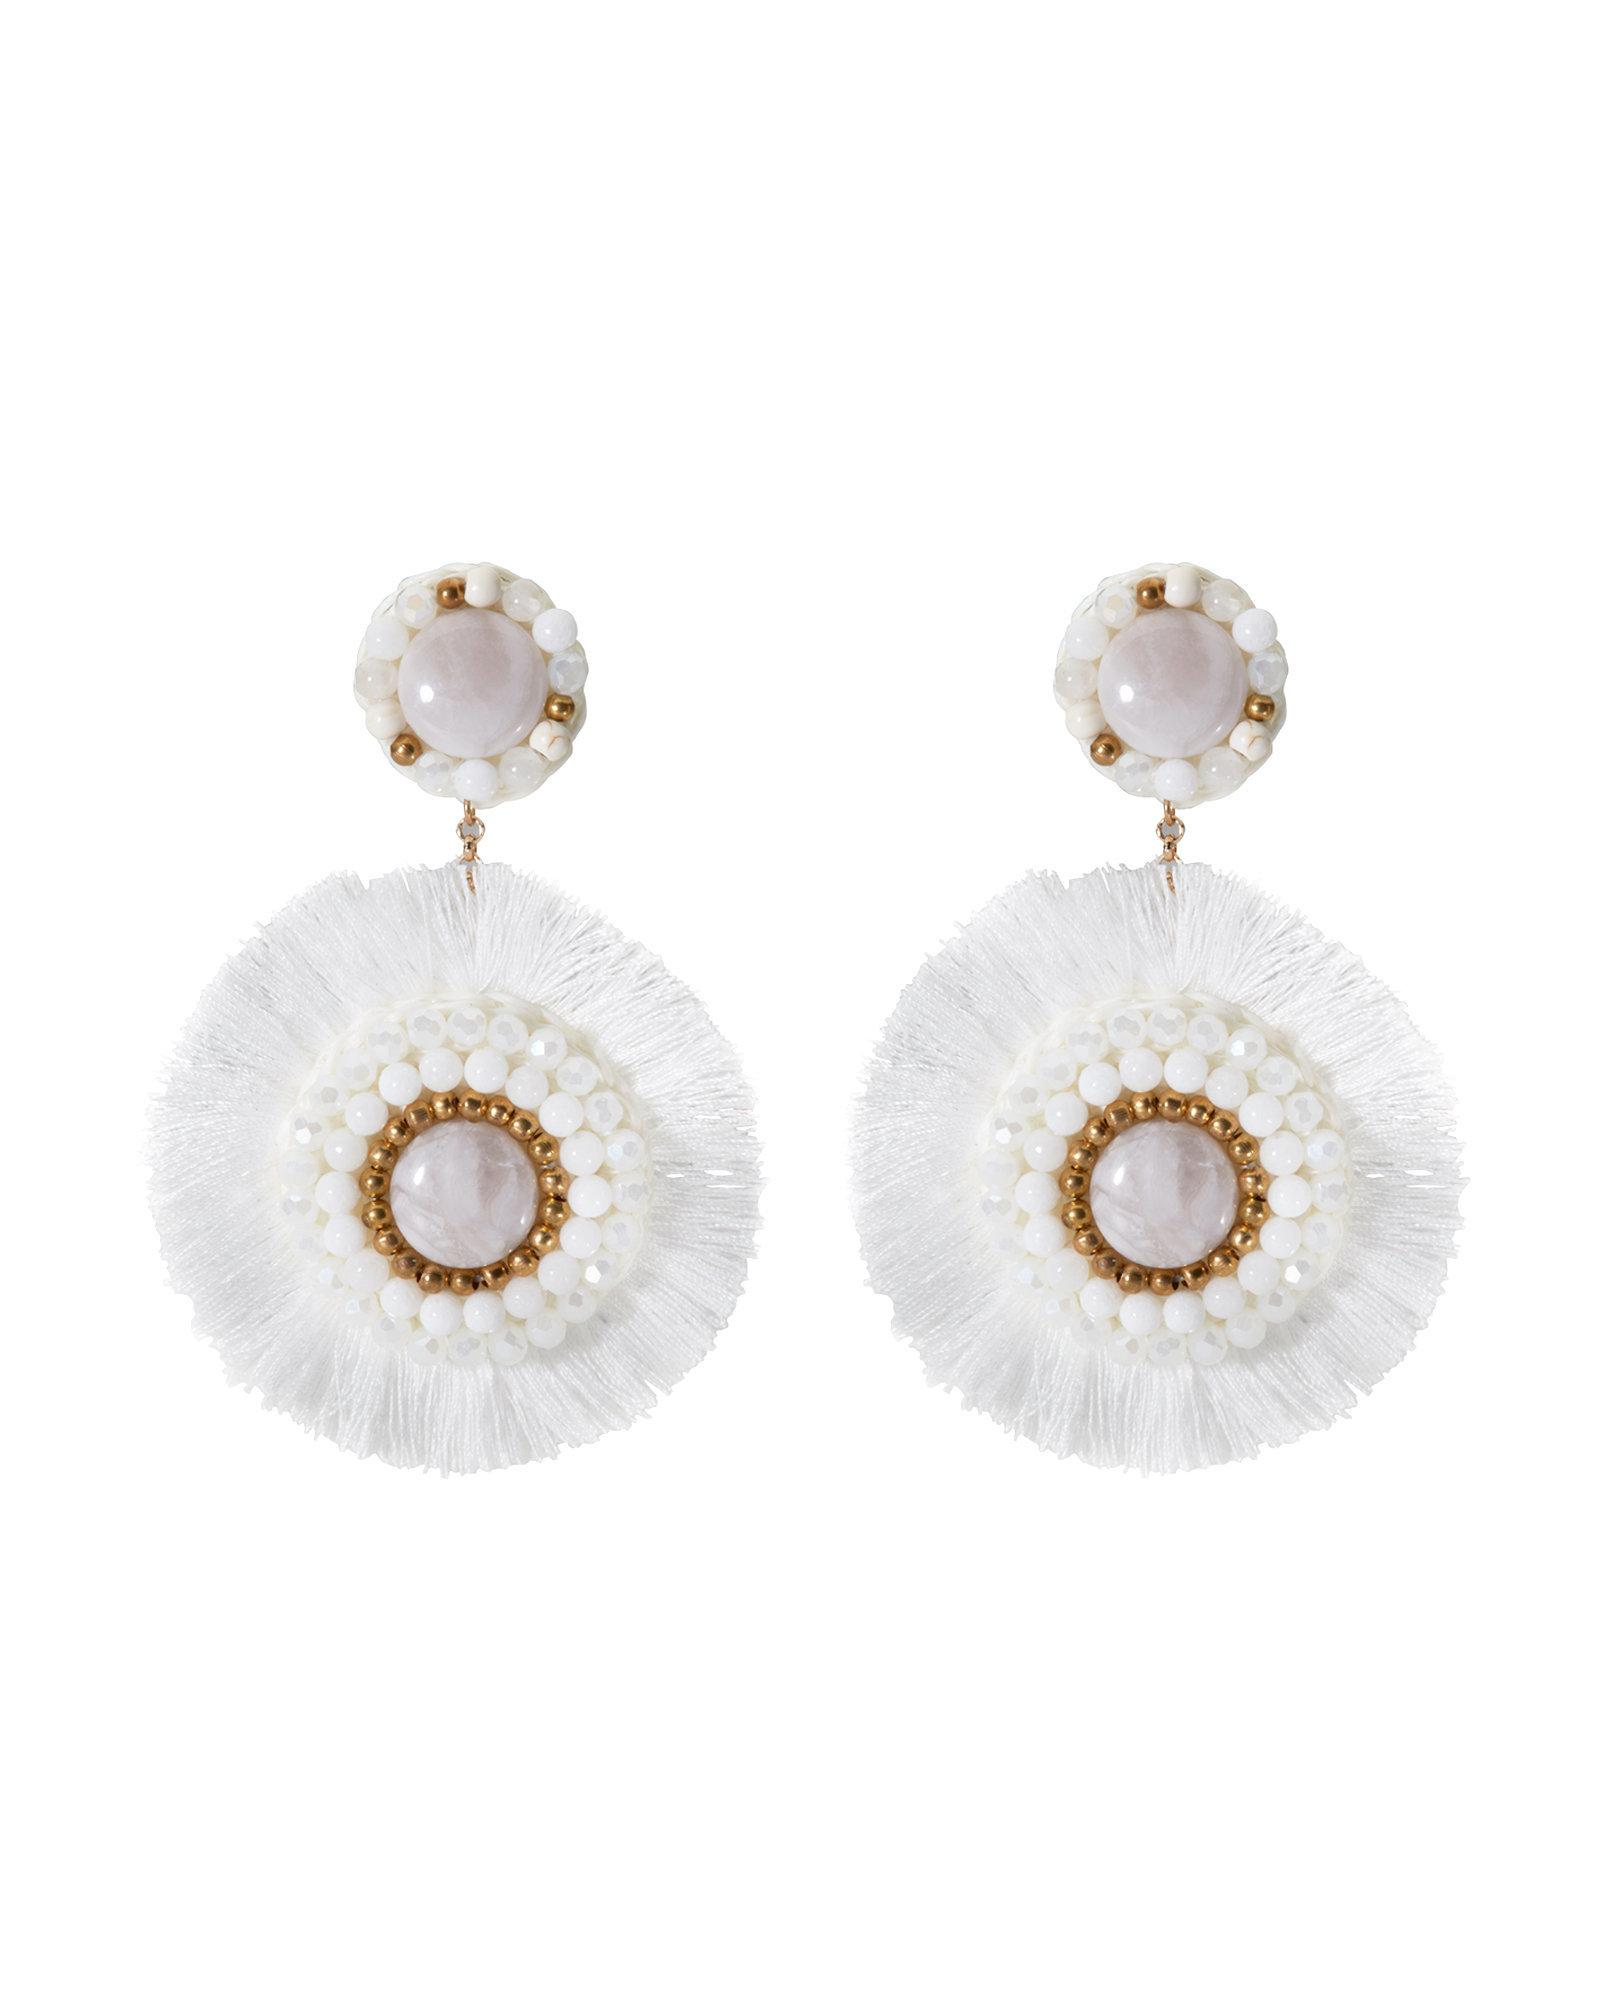 white by large loading moda bibi close earrings beaded blossom marini operandi